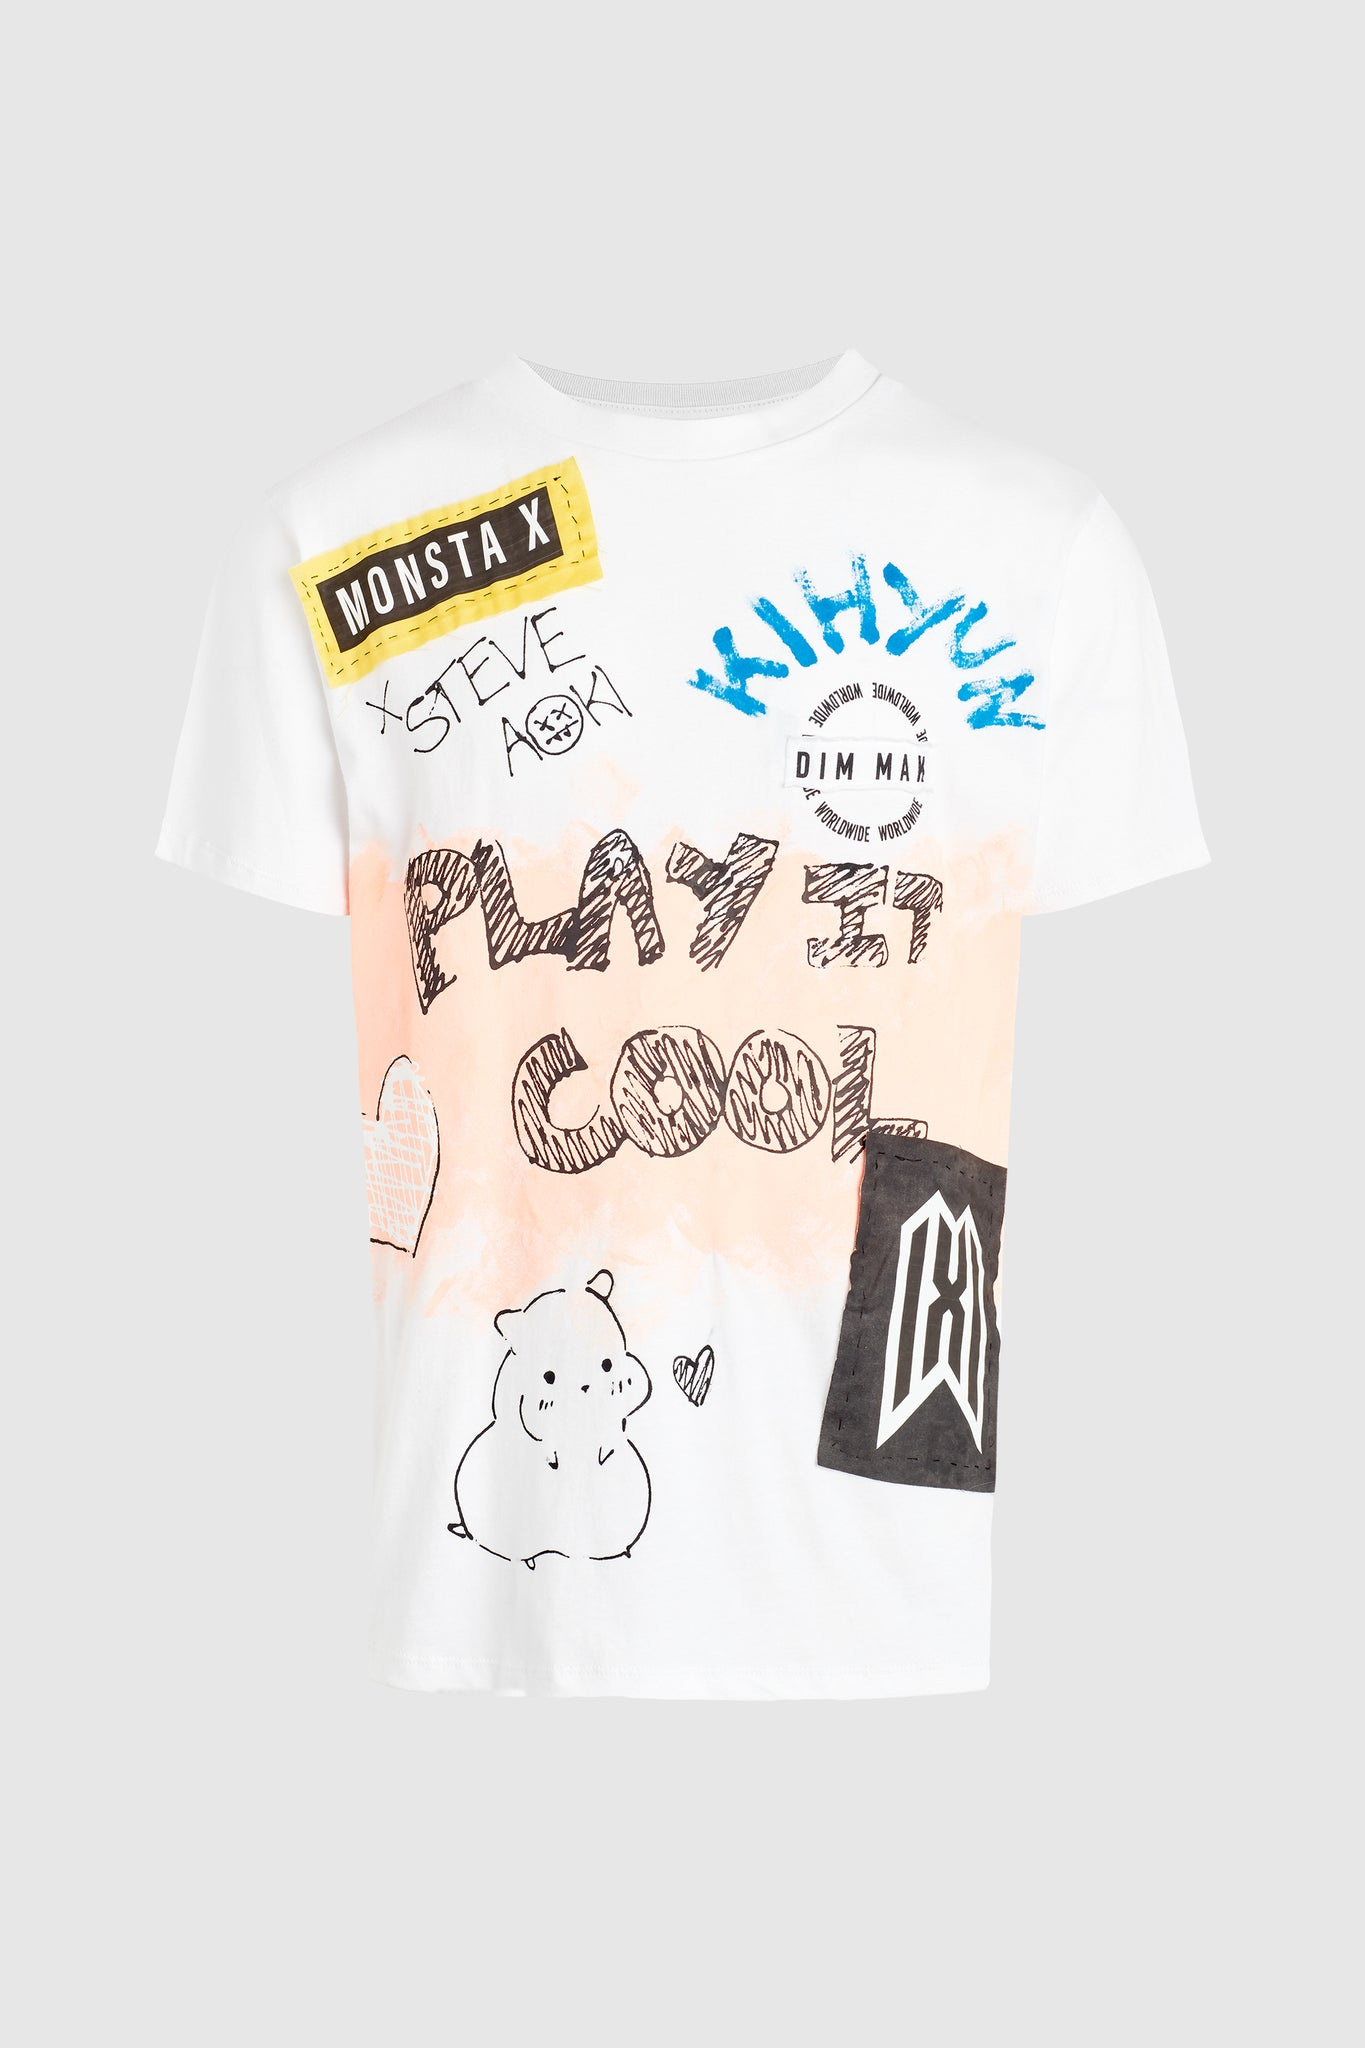 PLAY IT COOL - MONSTA X - KIHYUN #64 (Custom for Monsta X)